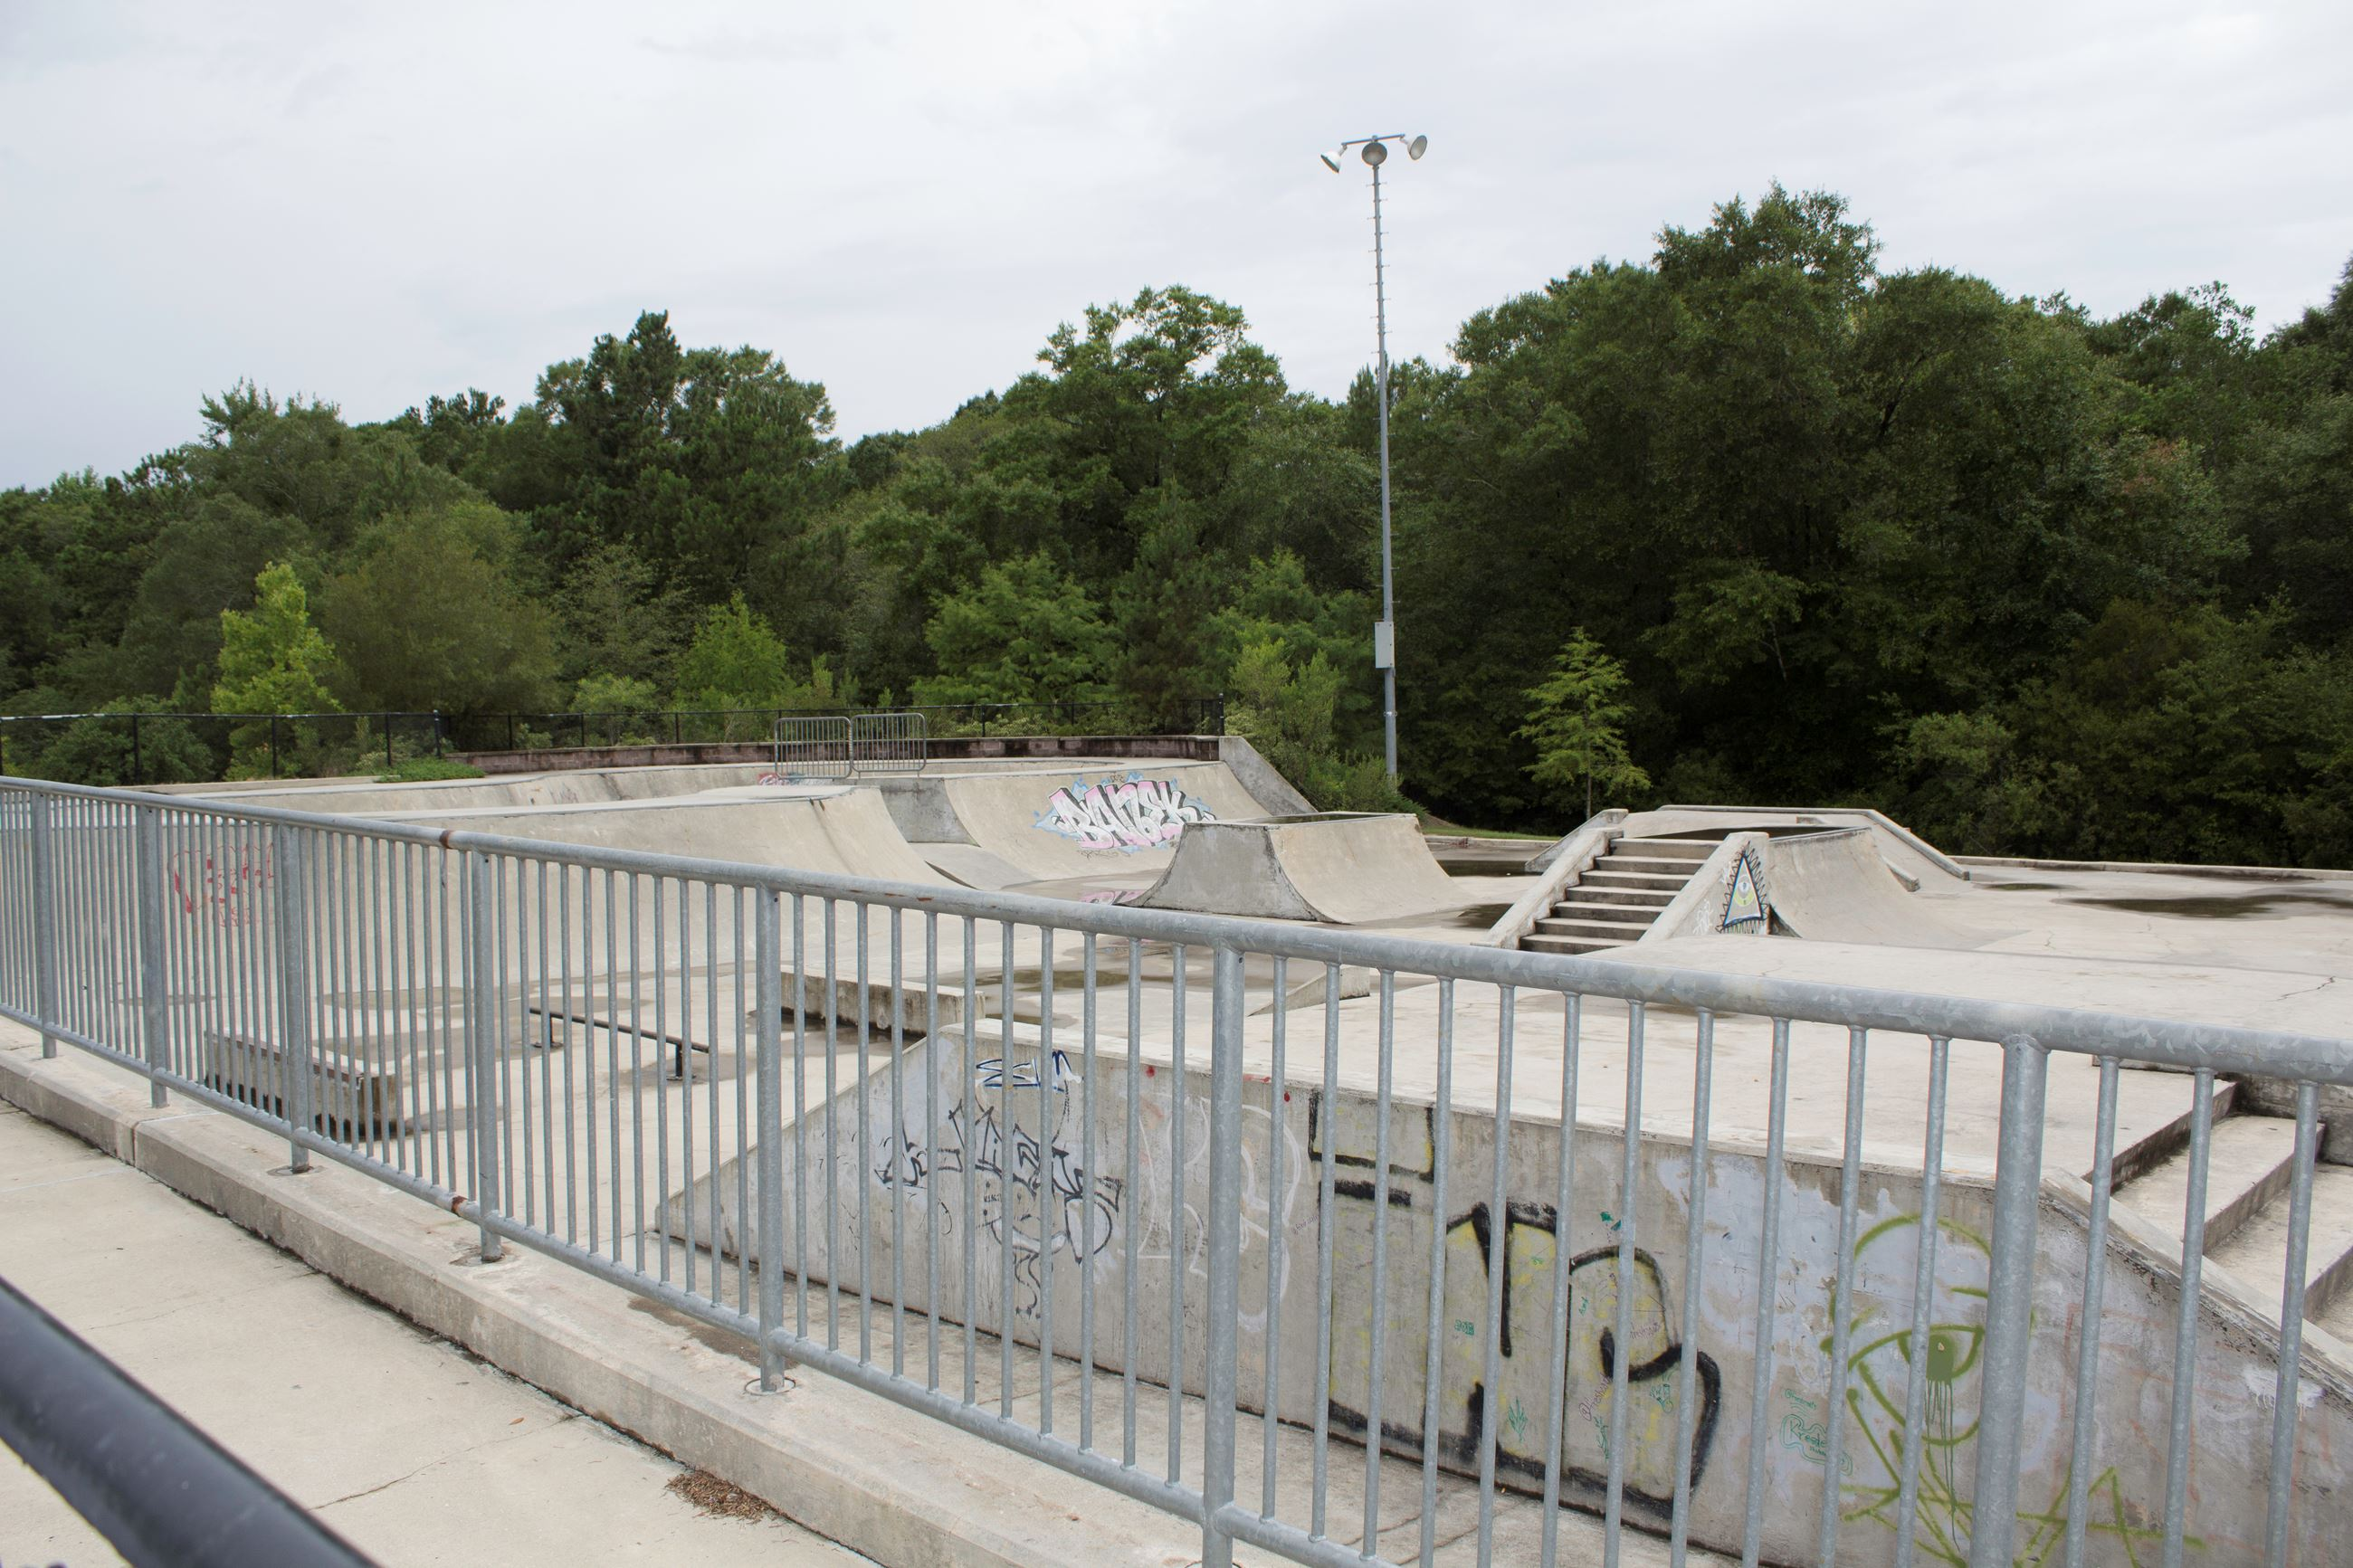 An image of a railing overlooking a concrete skate park.